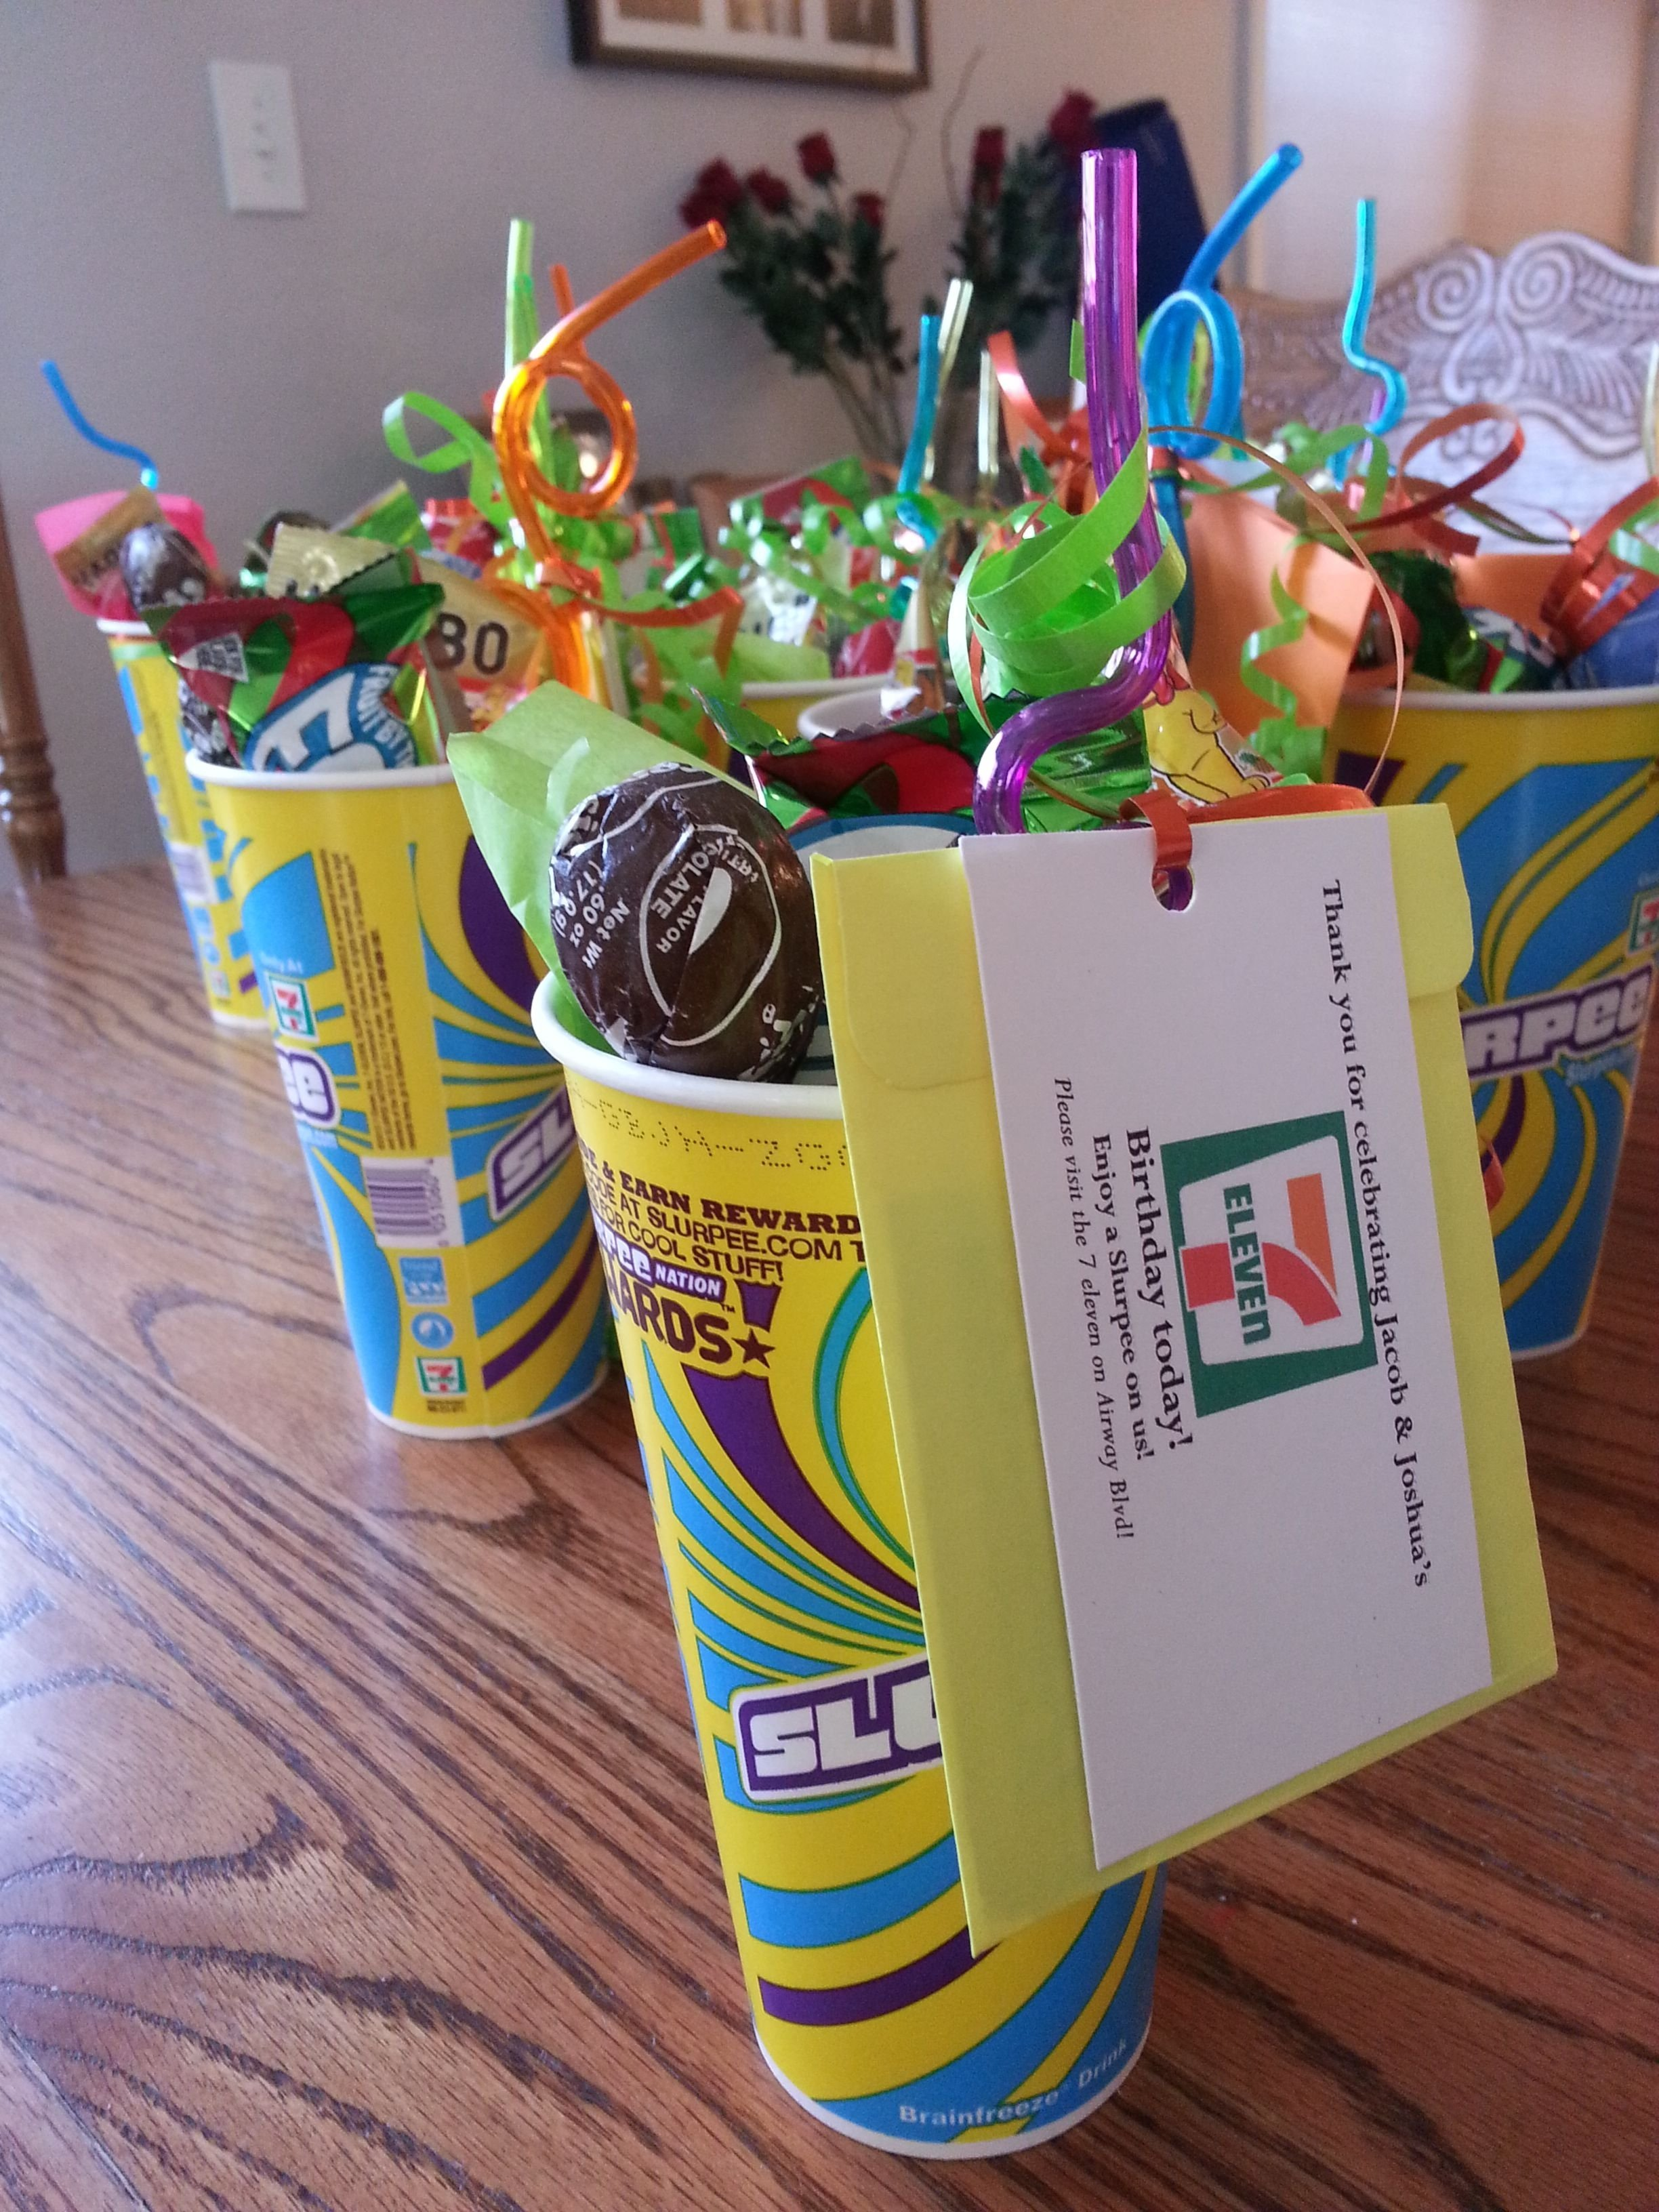 10 Gorgeous Birthday Party Ideas For 14 Year Old Girls my boys turned 7 and 11 years old and their birthdays are very close 10 2021